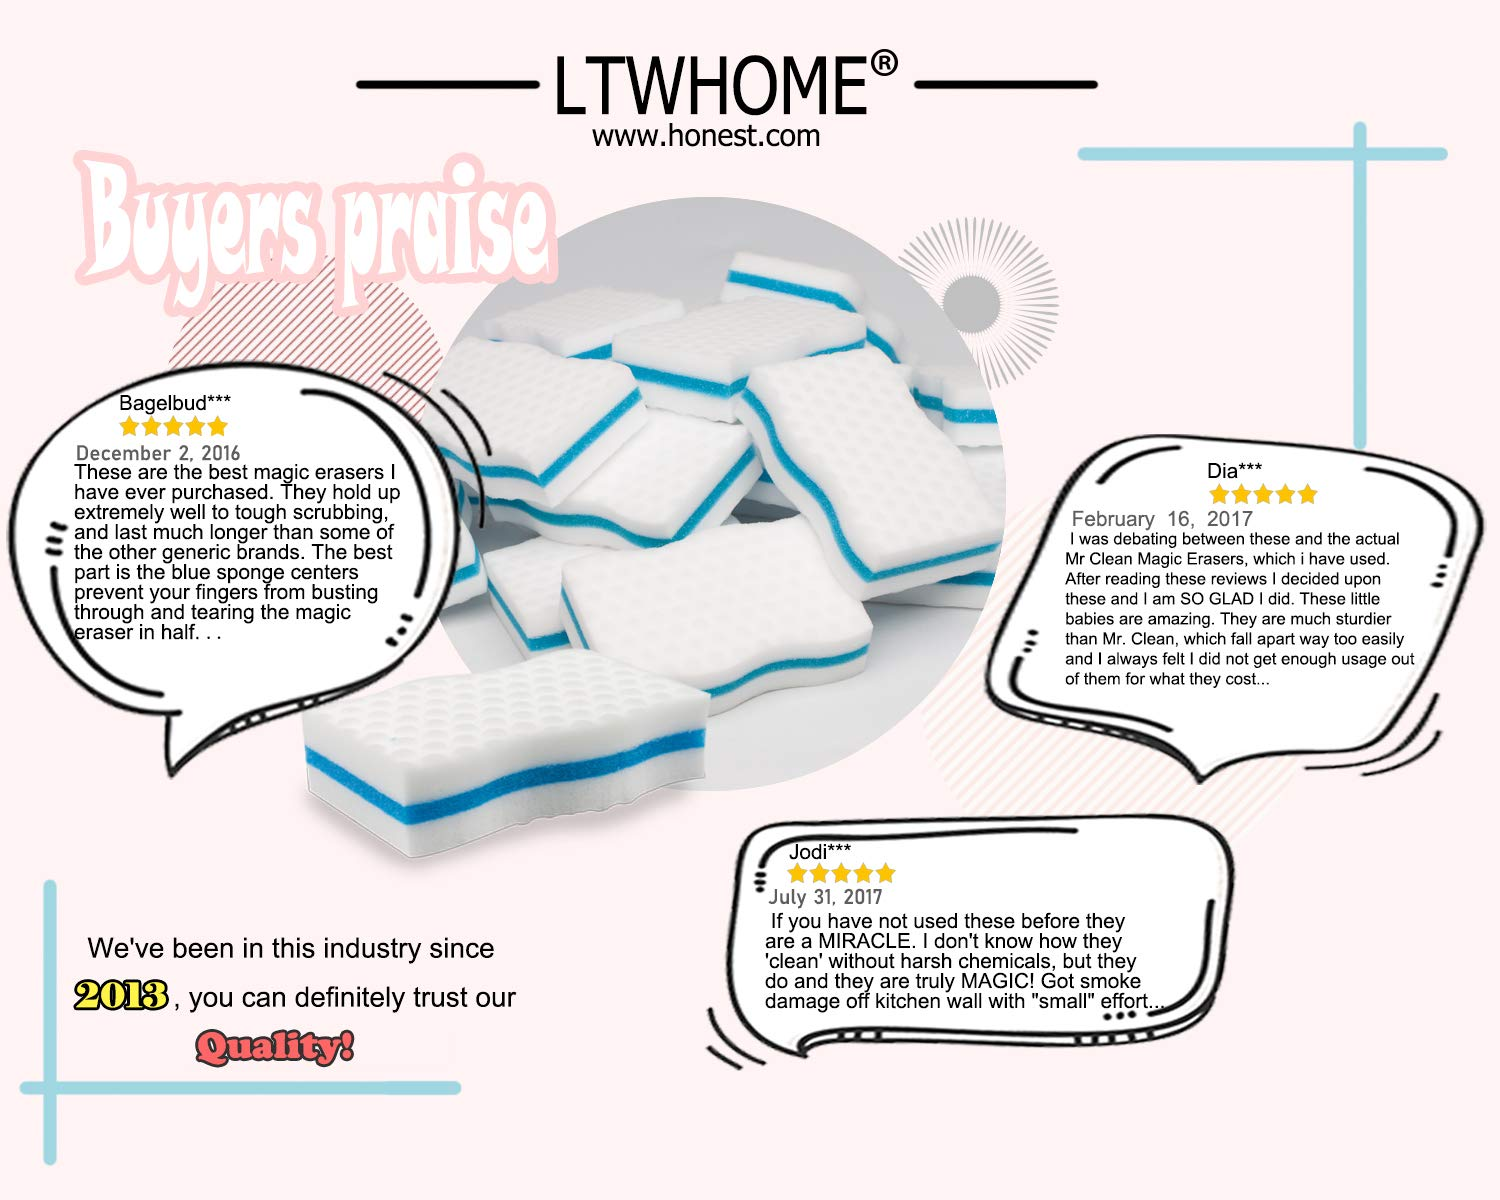 LTWHOME Generic Magic Eraser Kitchen & Dish Scrubber Dual Sided Cleaning Melamine Foam M(4'' x 2.4'' x 1'') (Pack of 100) by LTWHOME (Image #4)